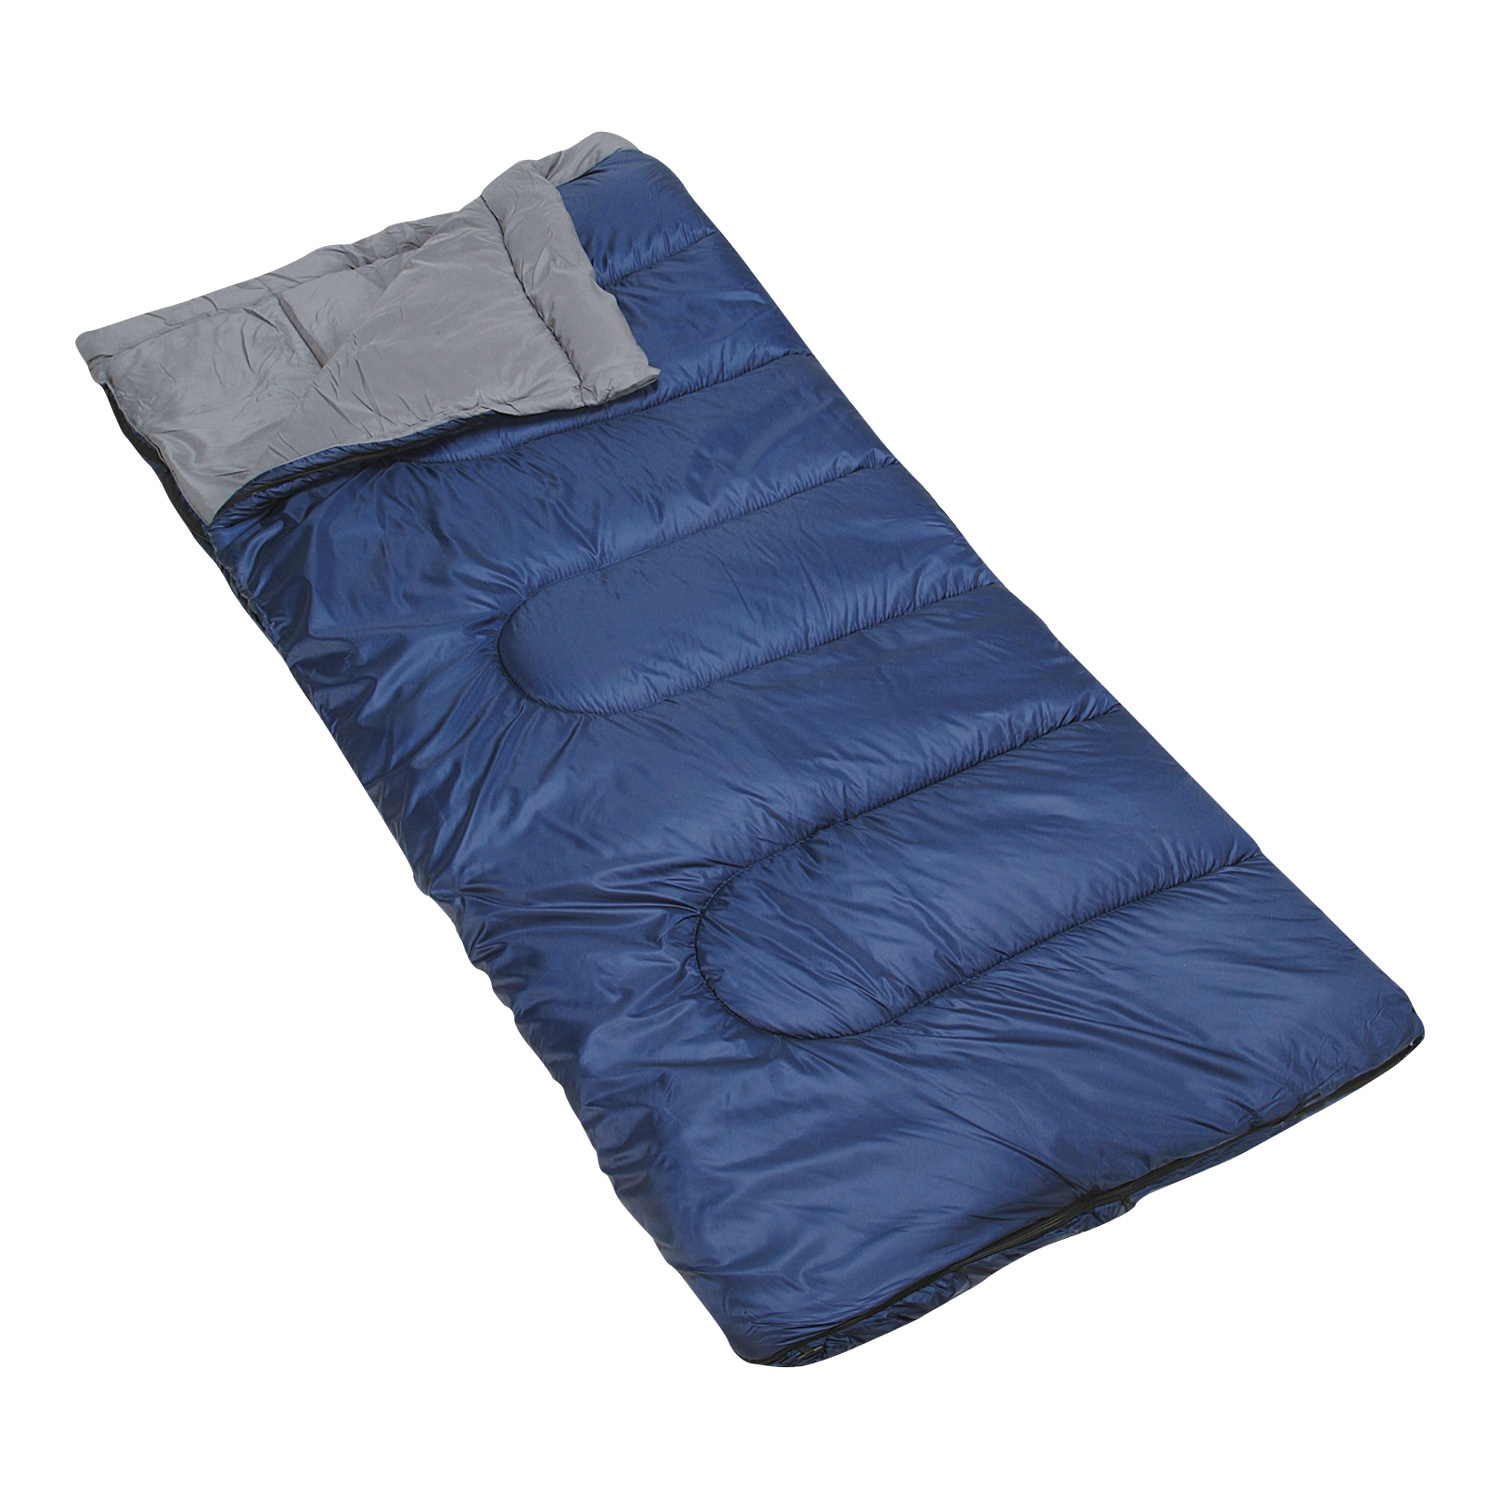 Picture Of Sleeping Bag   Clipart Best